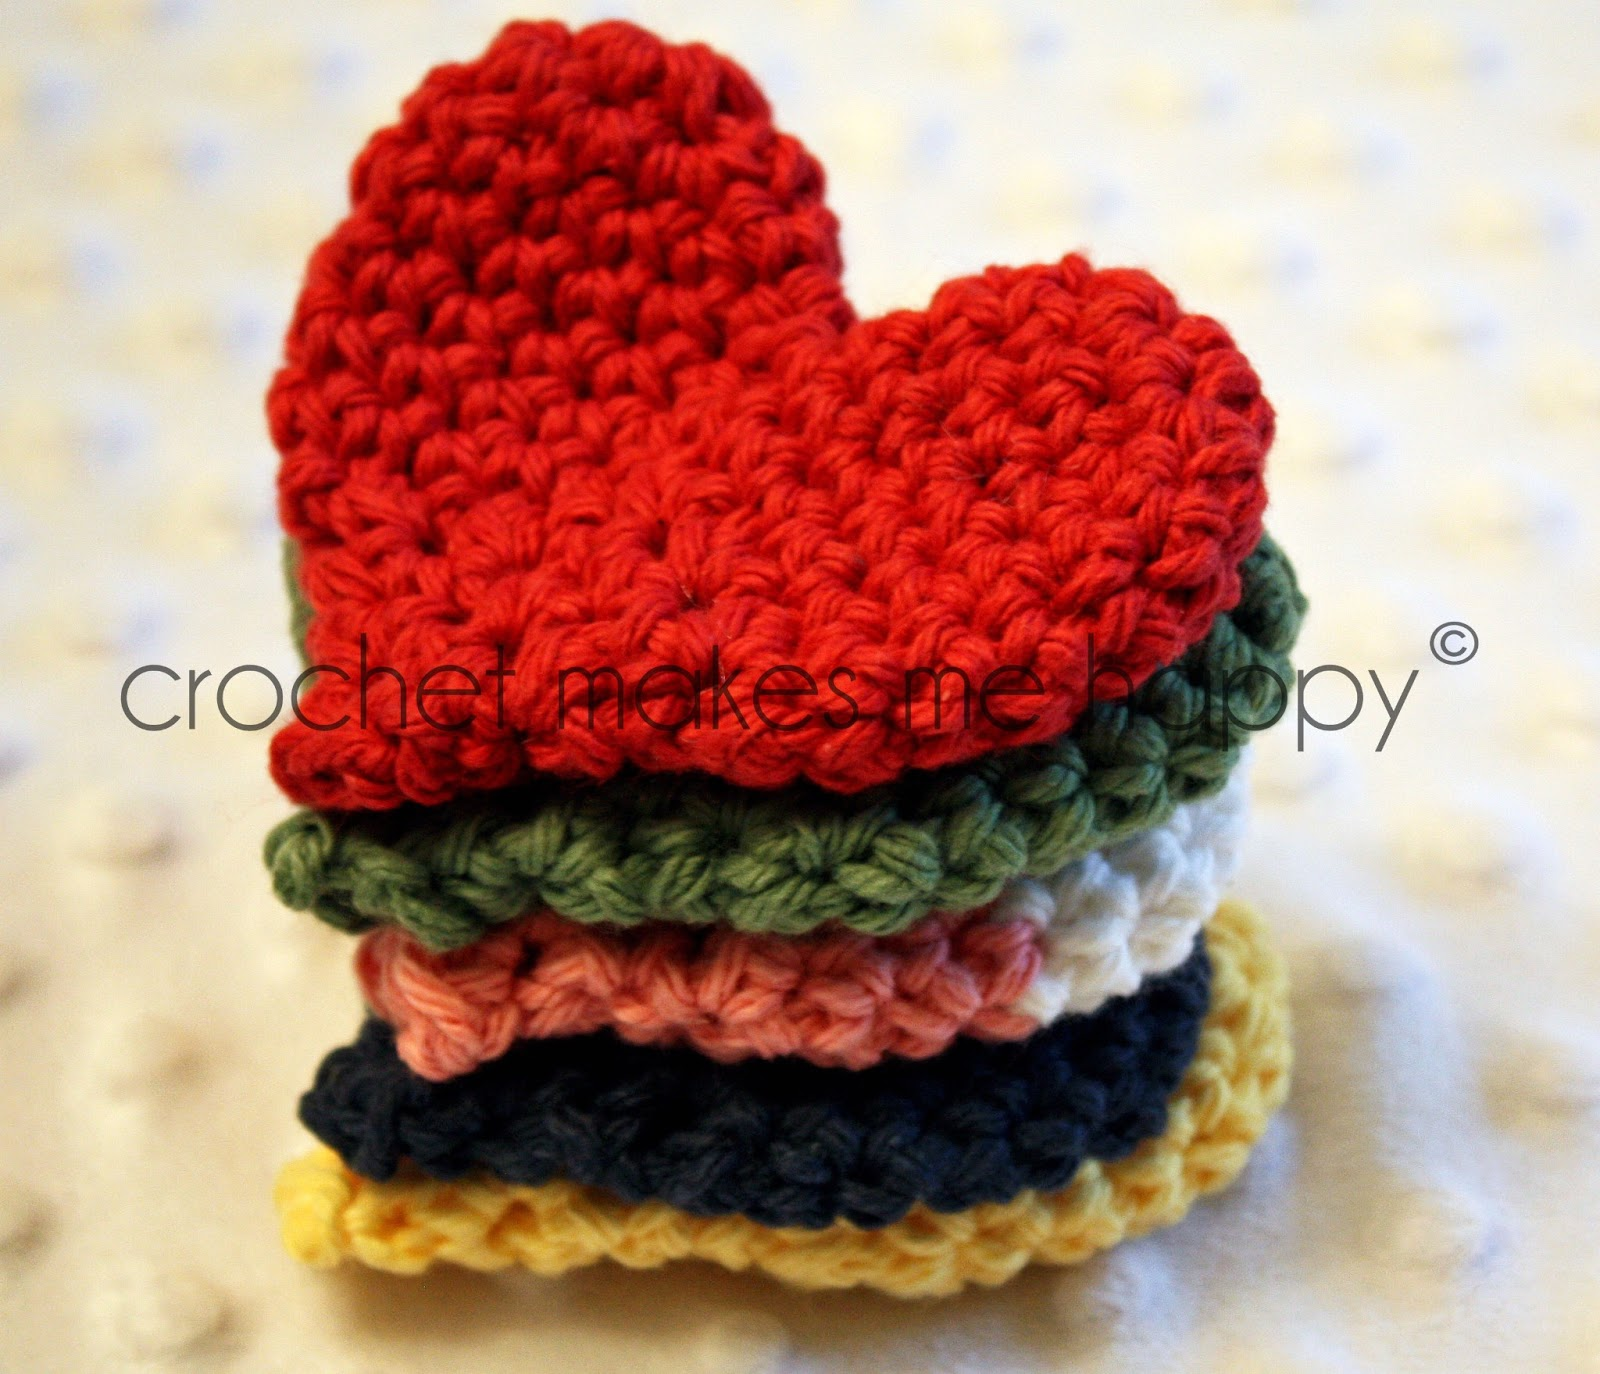 Crochet Heart : Crochet Makes Me Happy!: Crochet Pattern: The Heart